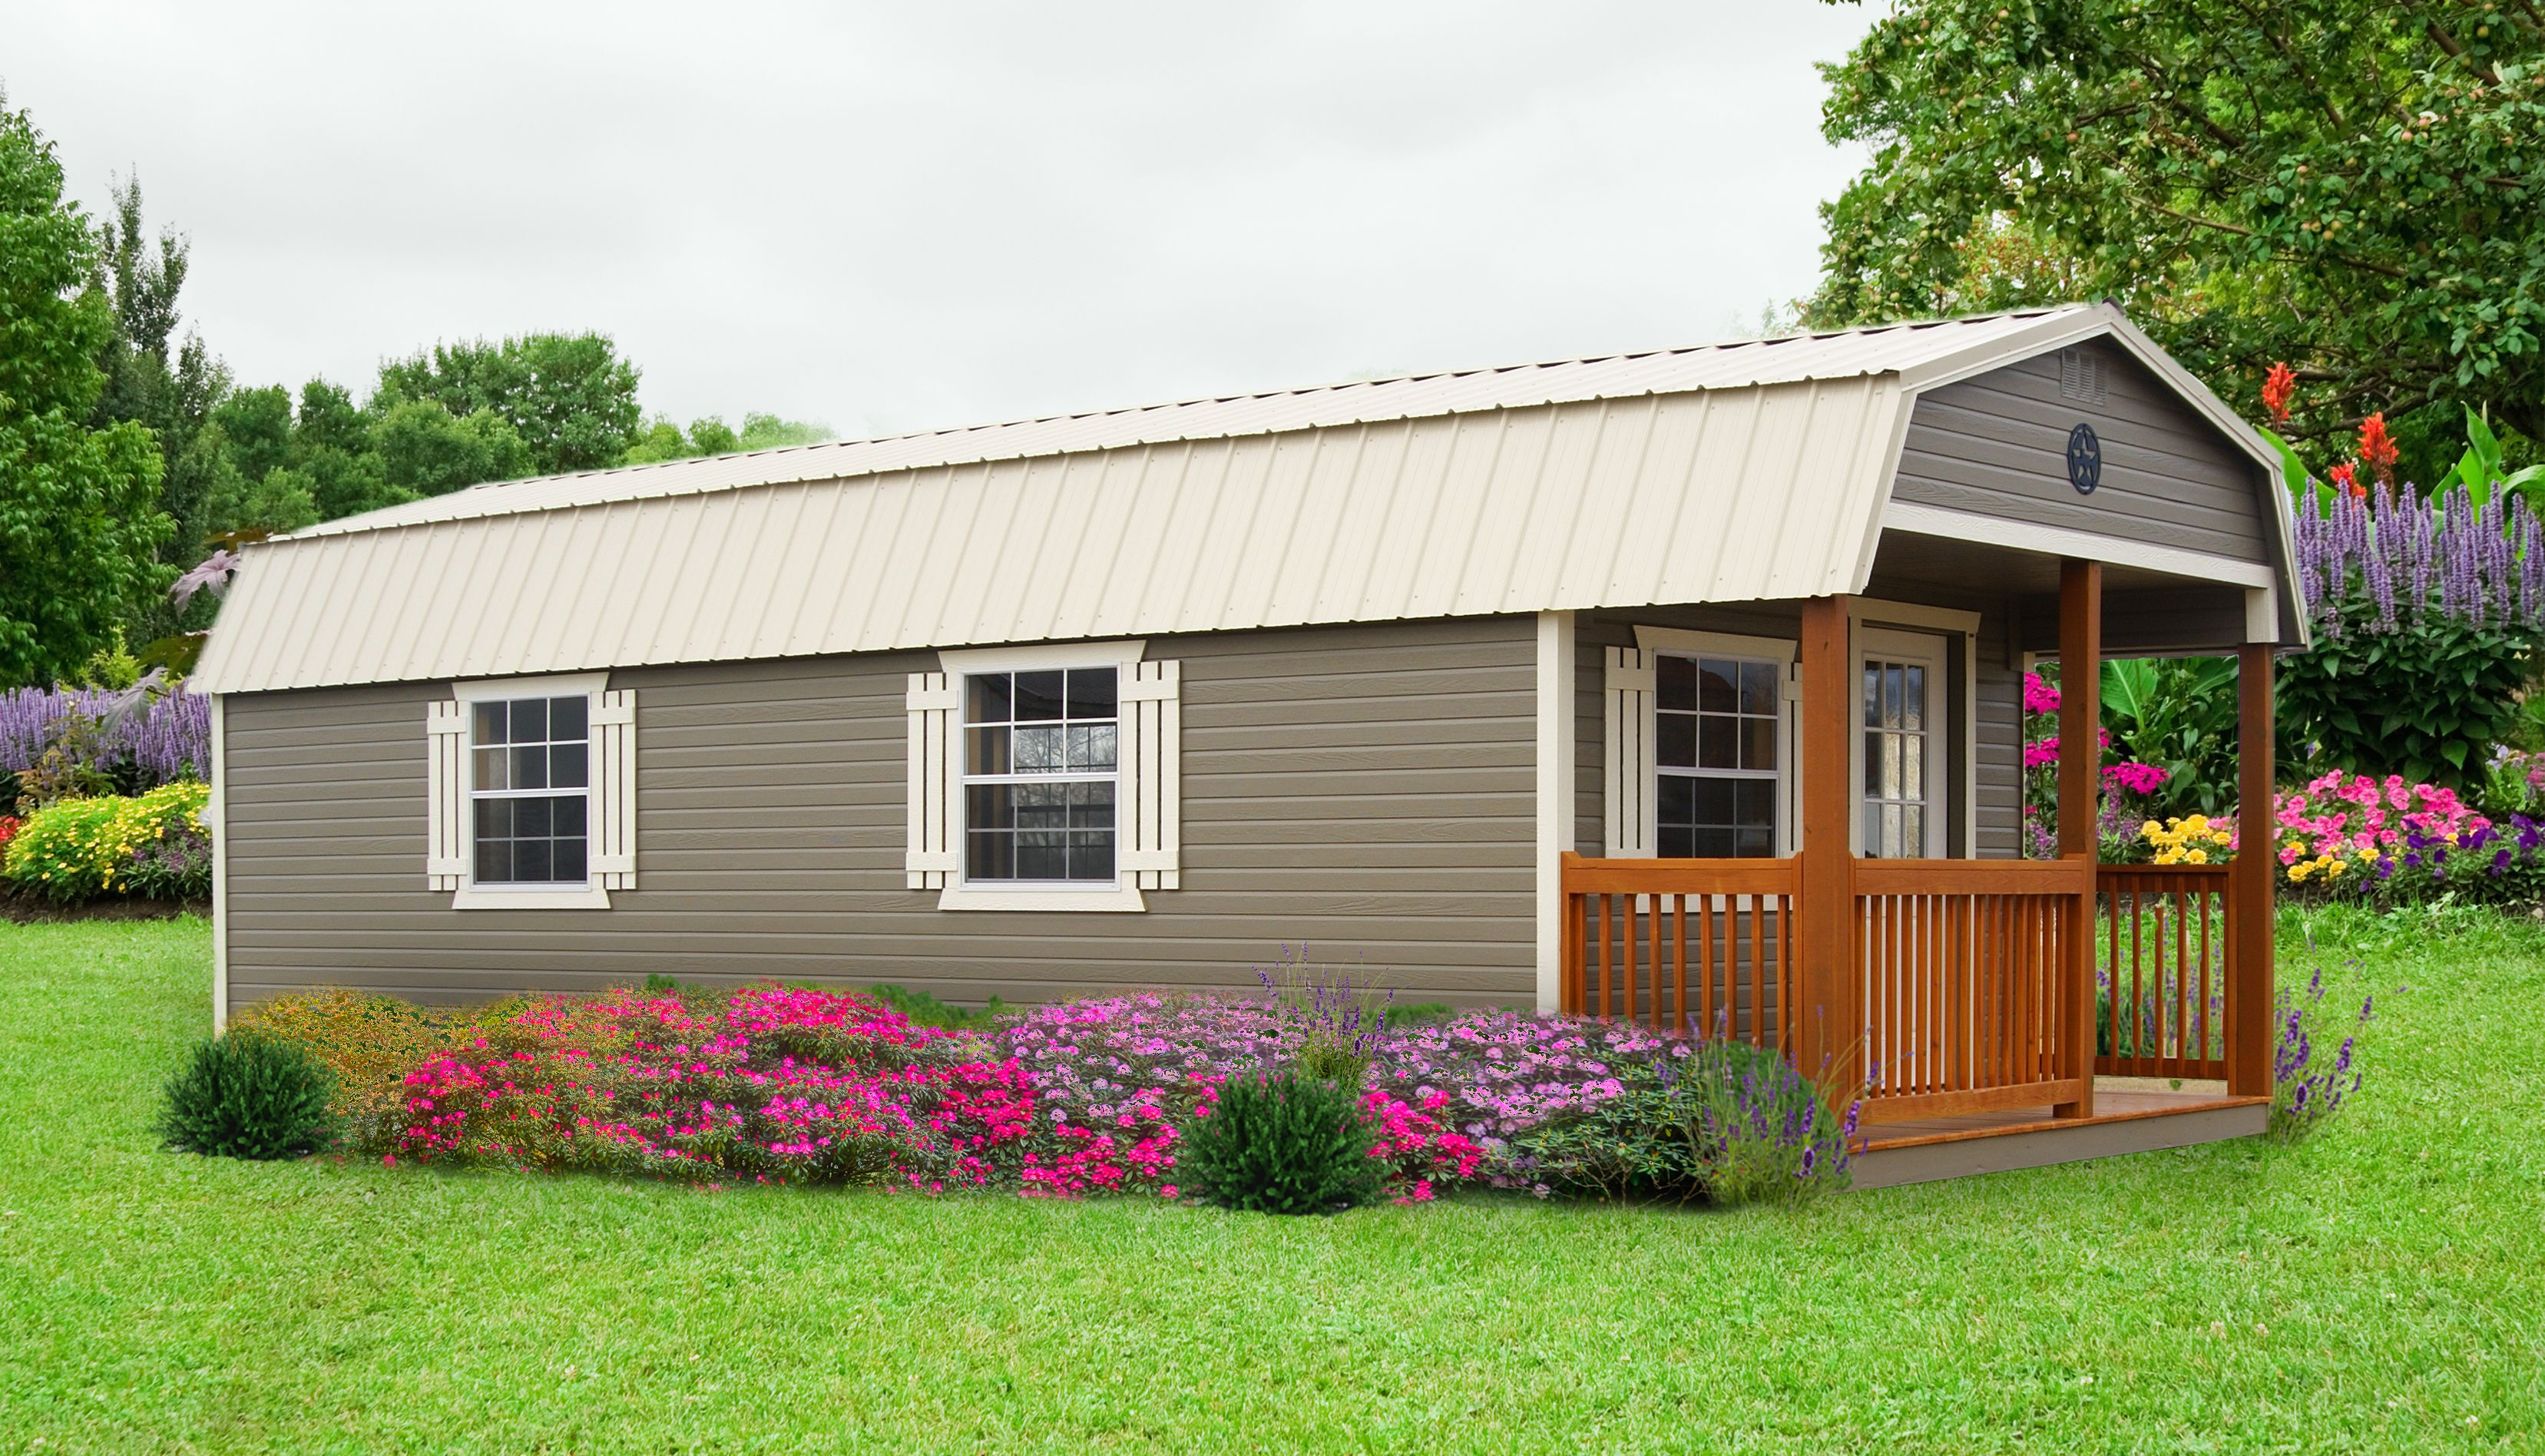 Painted Dutchlap Lofted Cabin